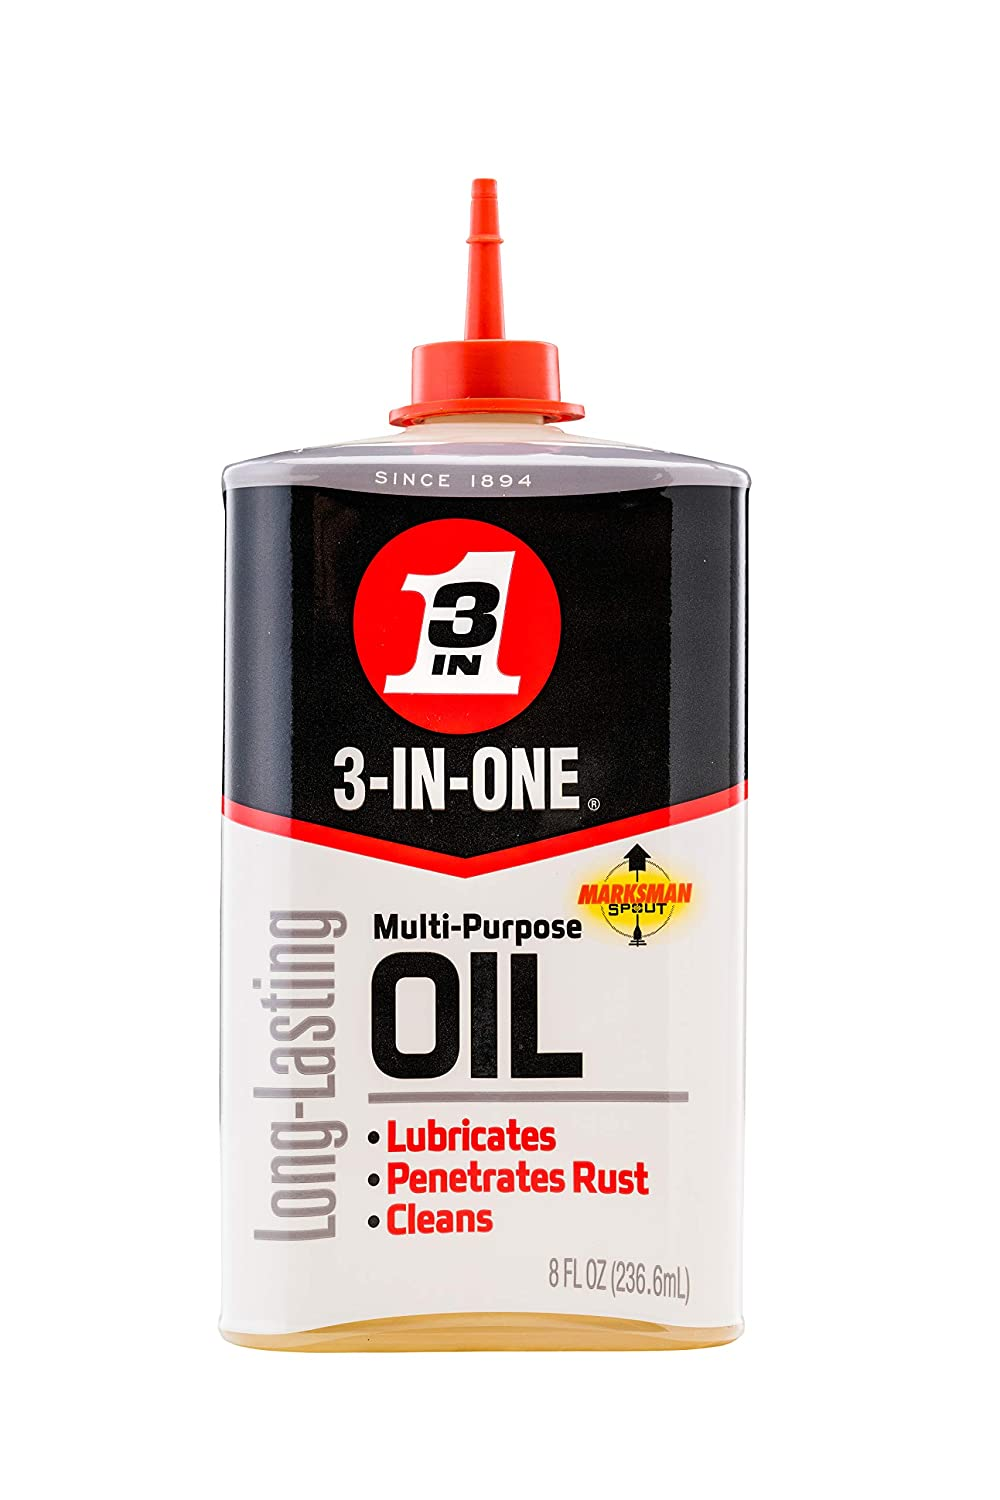 3-IN-ONE 10038 Multi-Purpose Oil